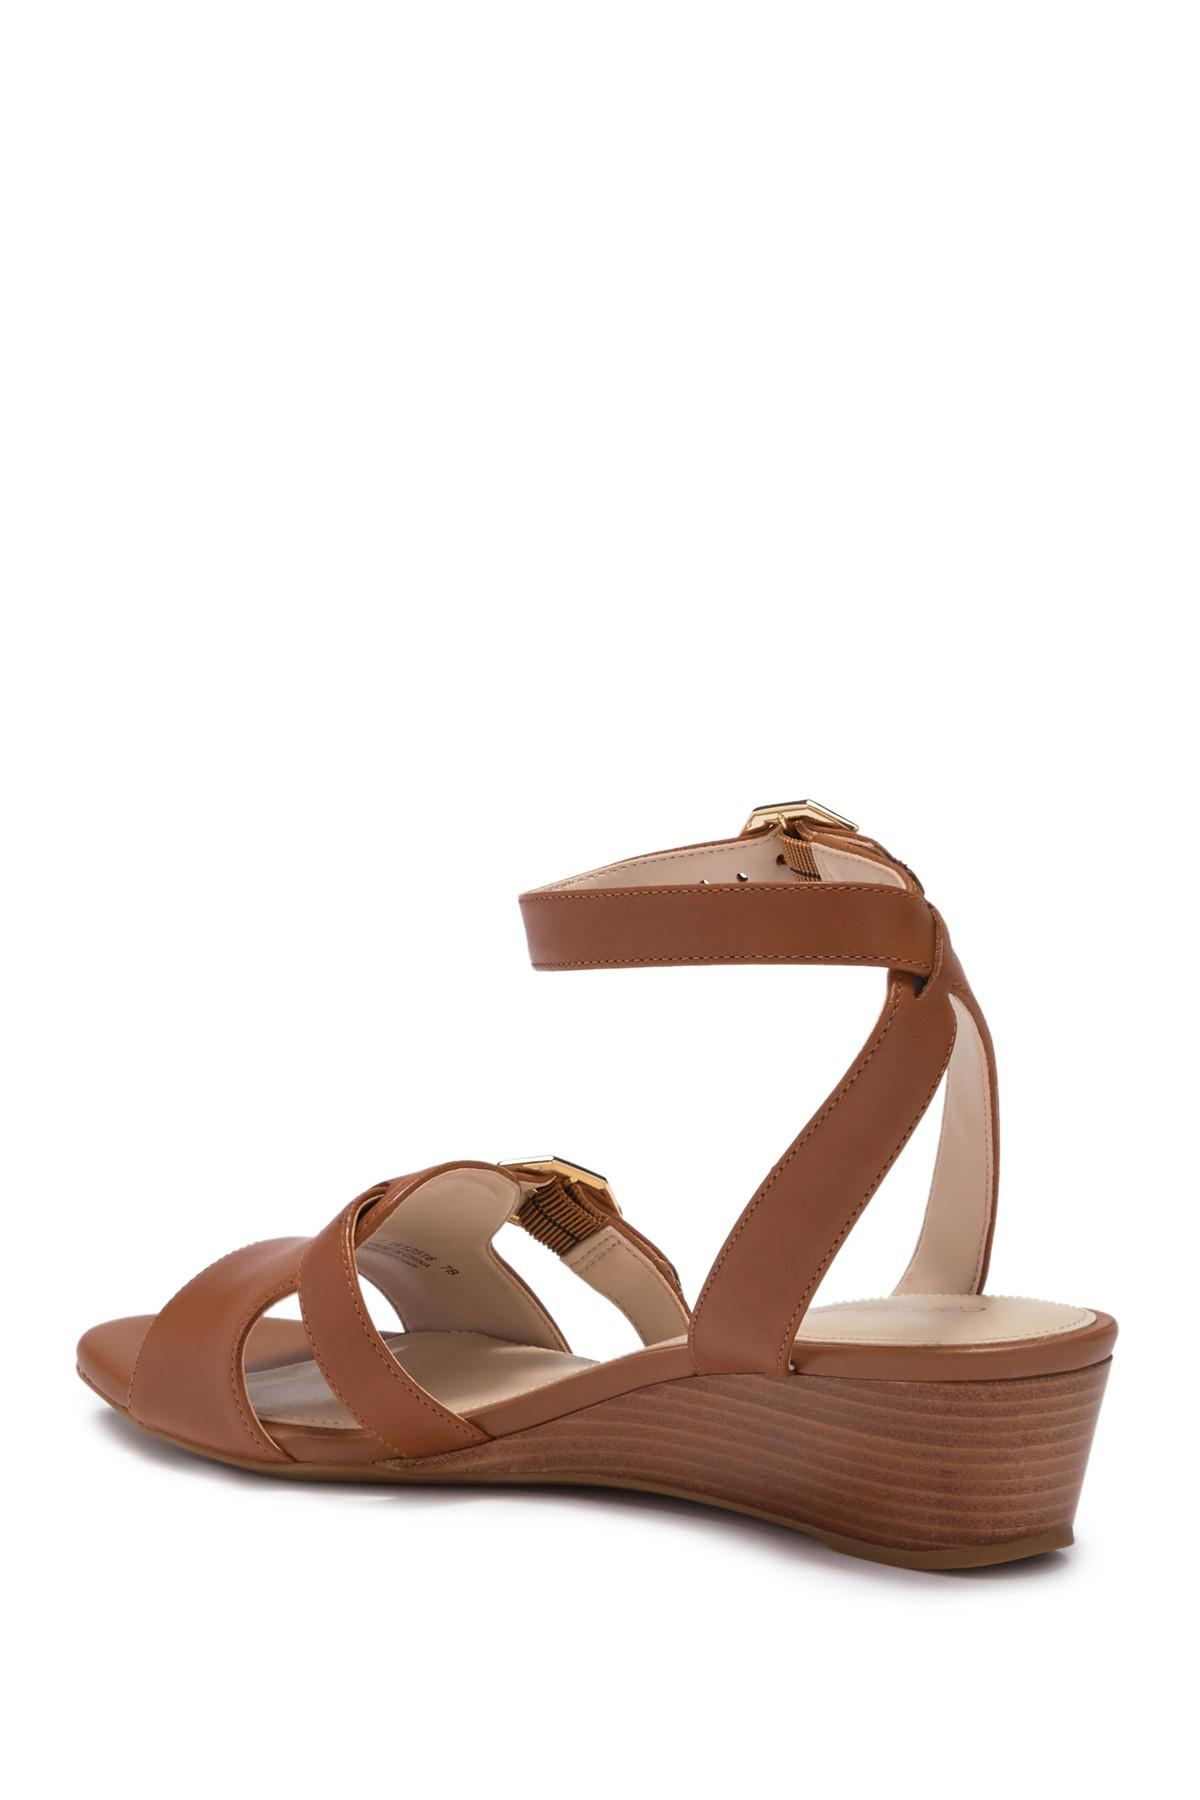 c18546d5f0f Lyst - Cole Haan Terrin Ankle Strap Wedge Sandal in Brown